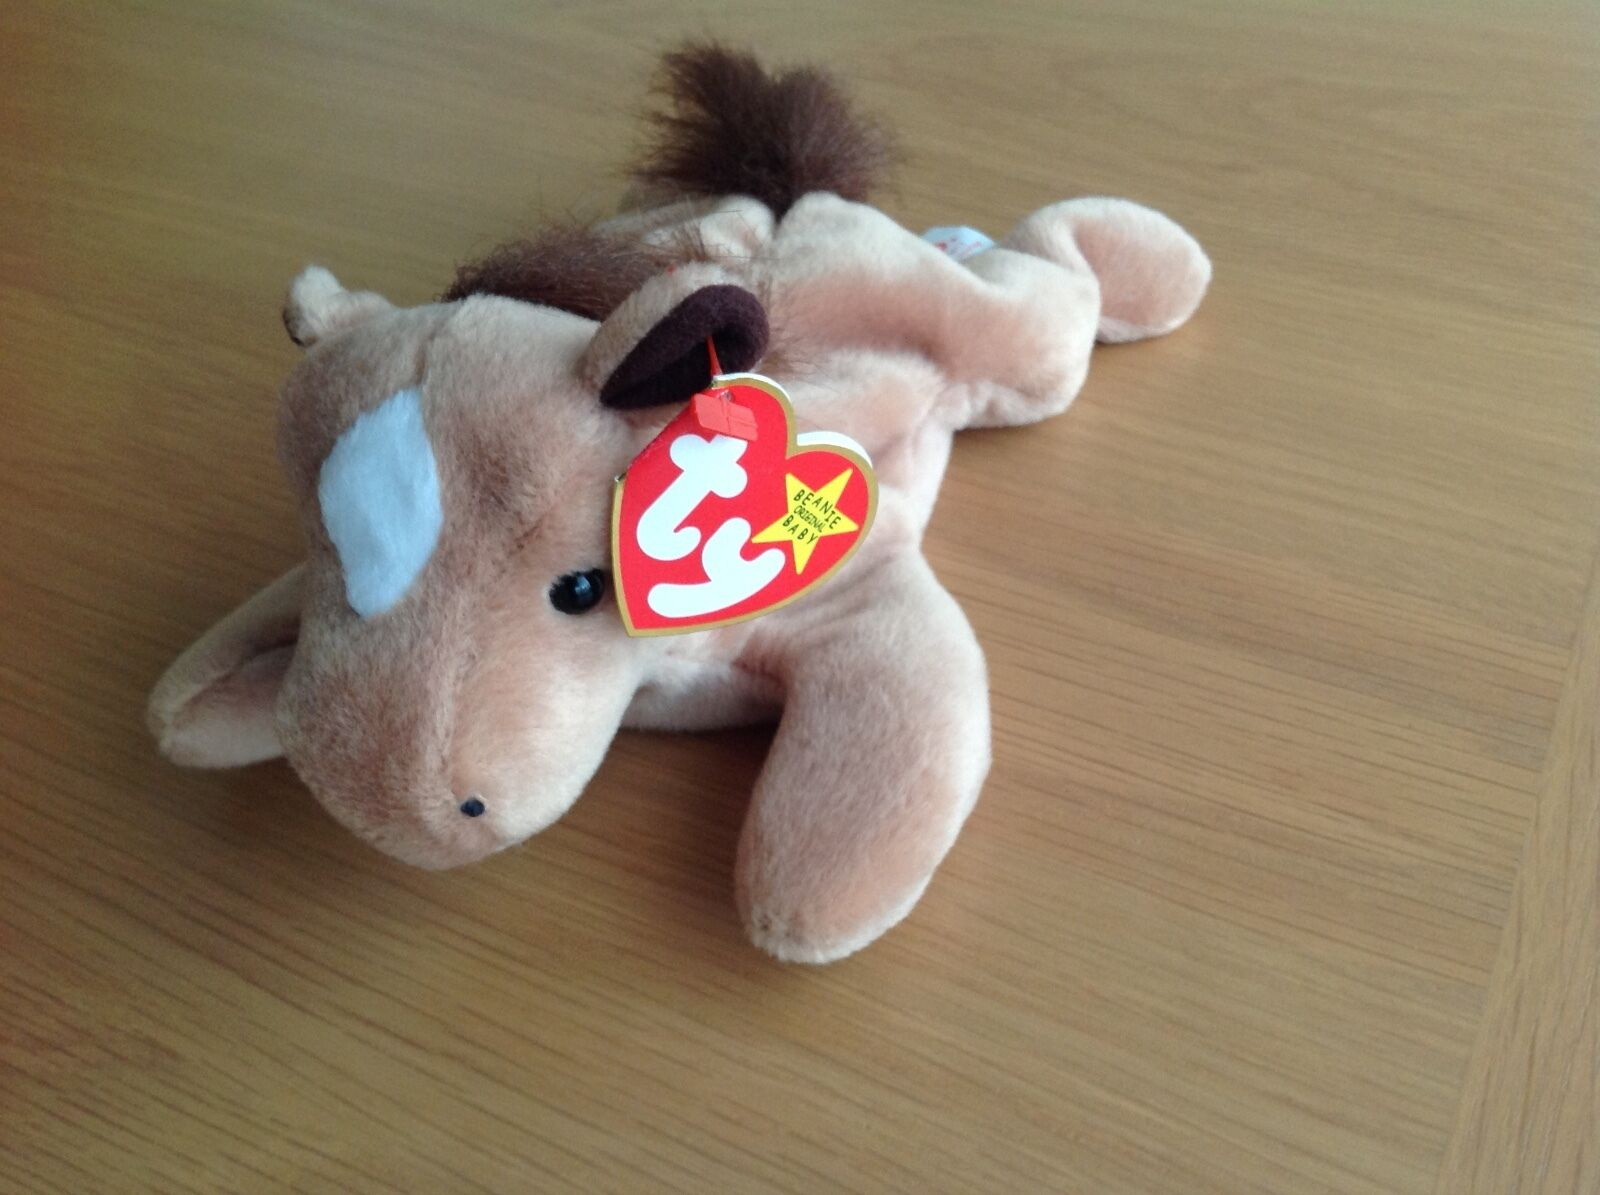 TY Beanie baby with misprint, DERBY, RARE AND COLLECTABLE.